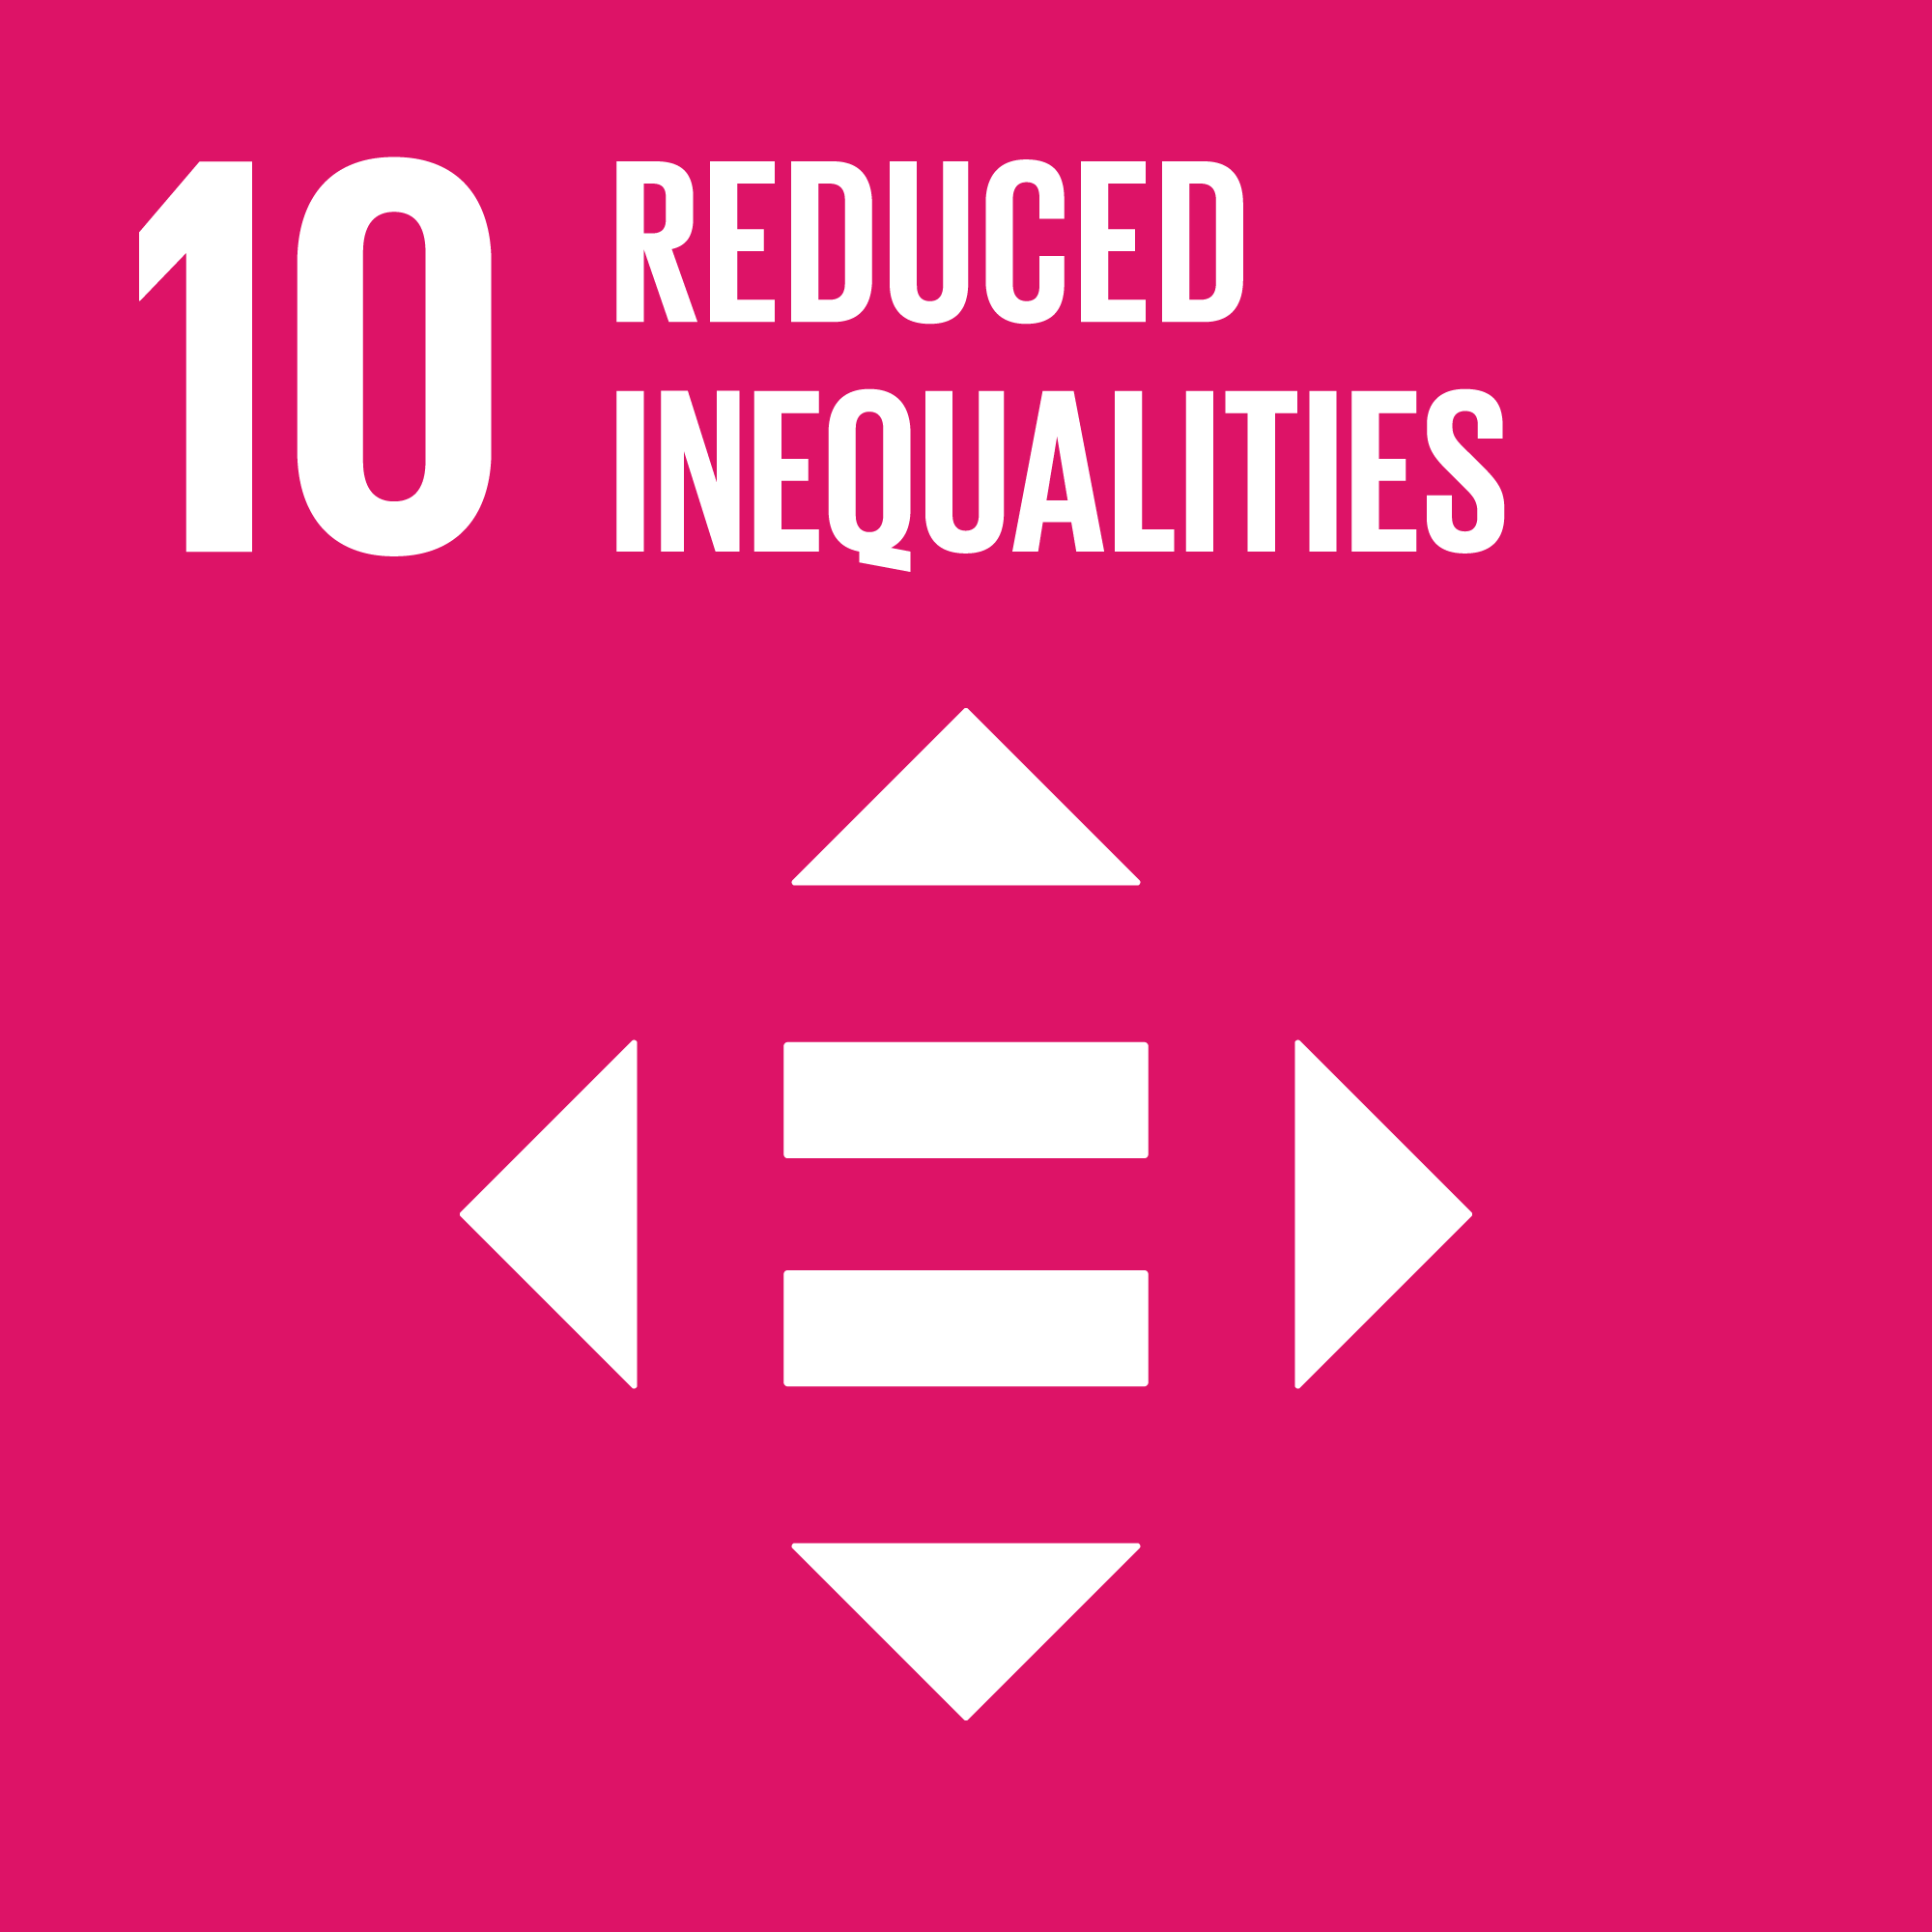 Sustainable Development Goal 10: Reduced inequality